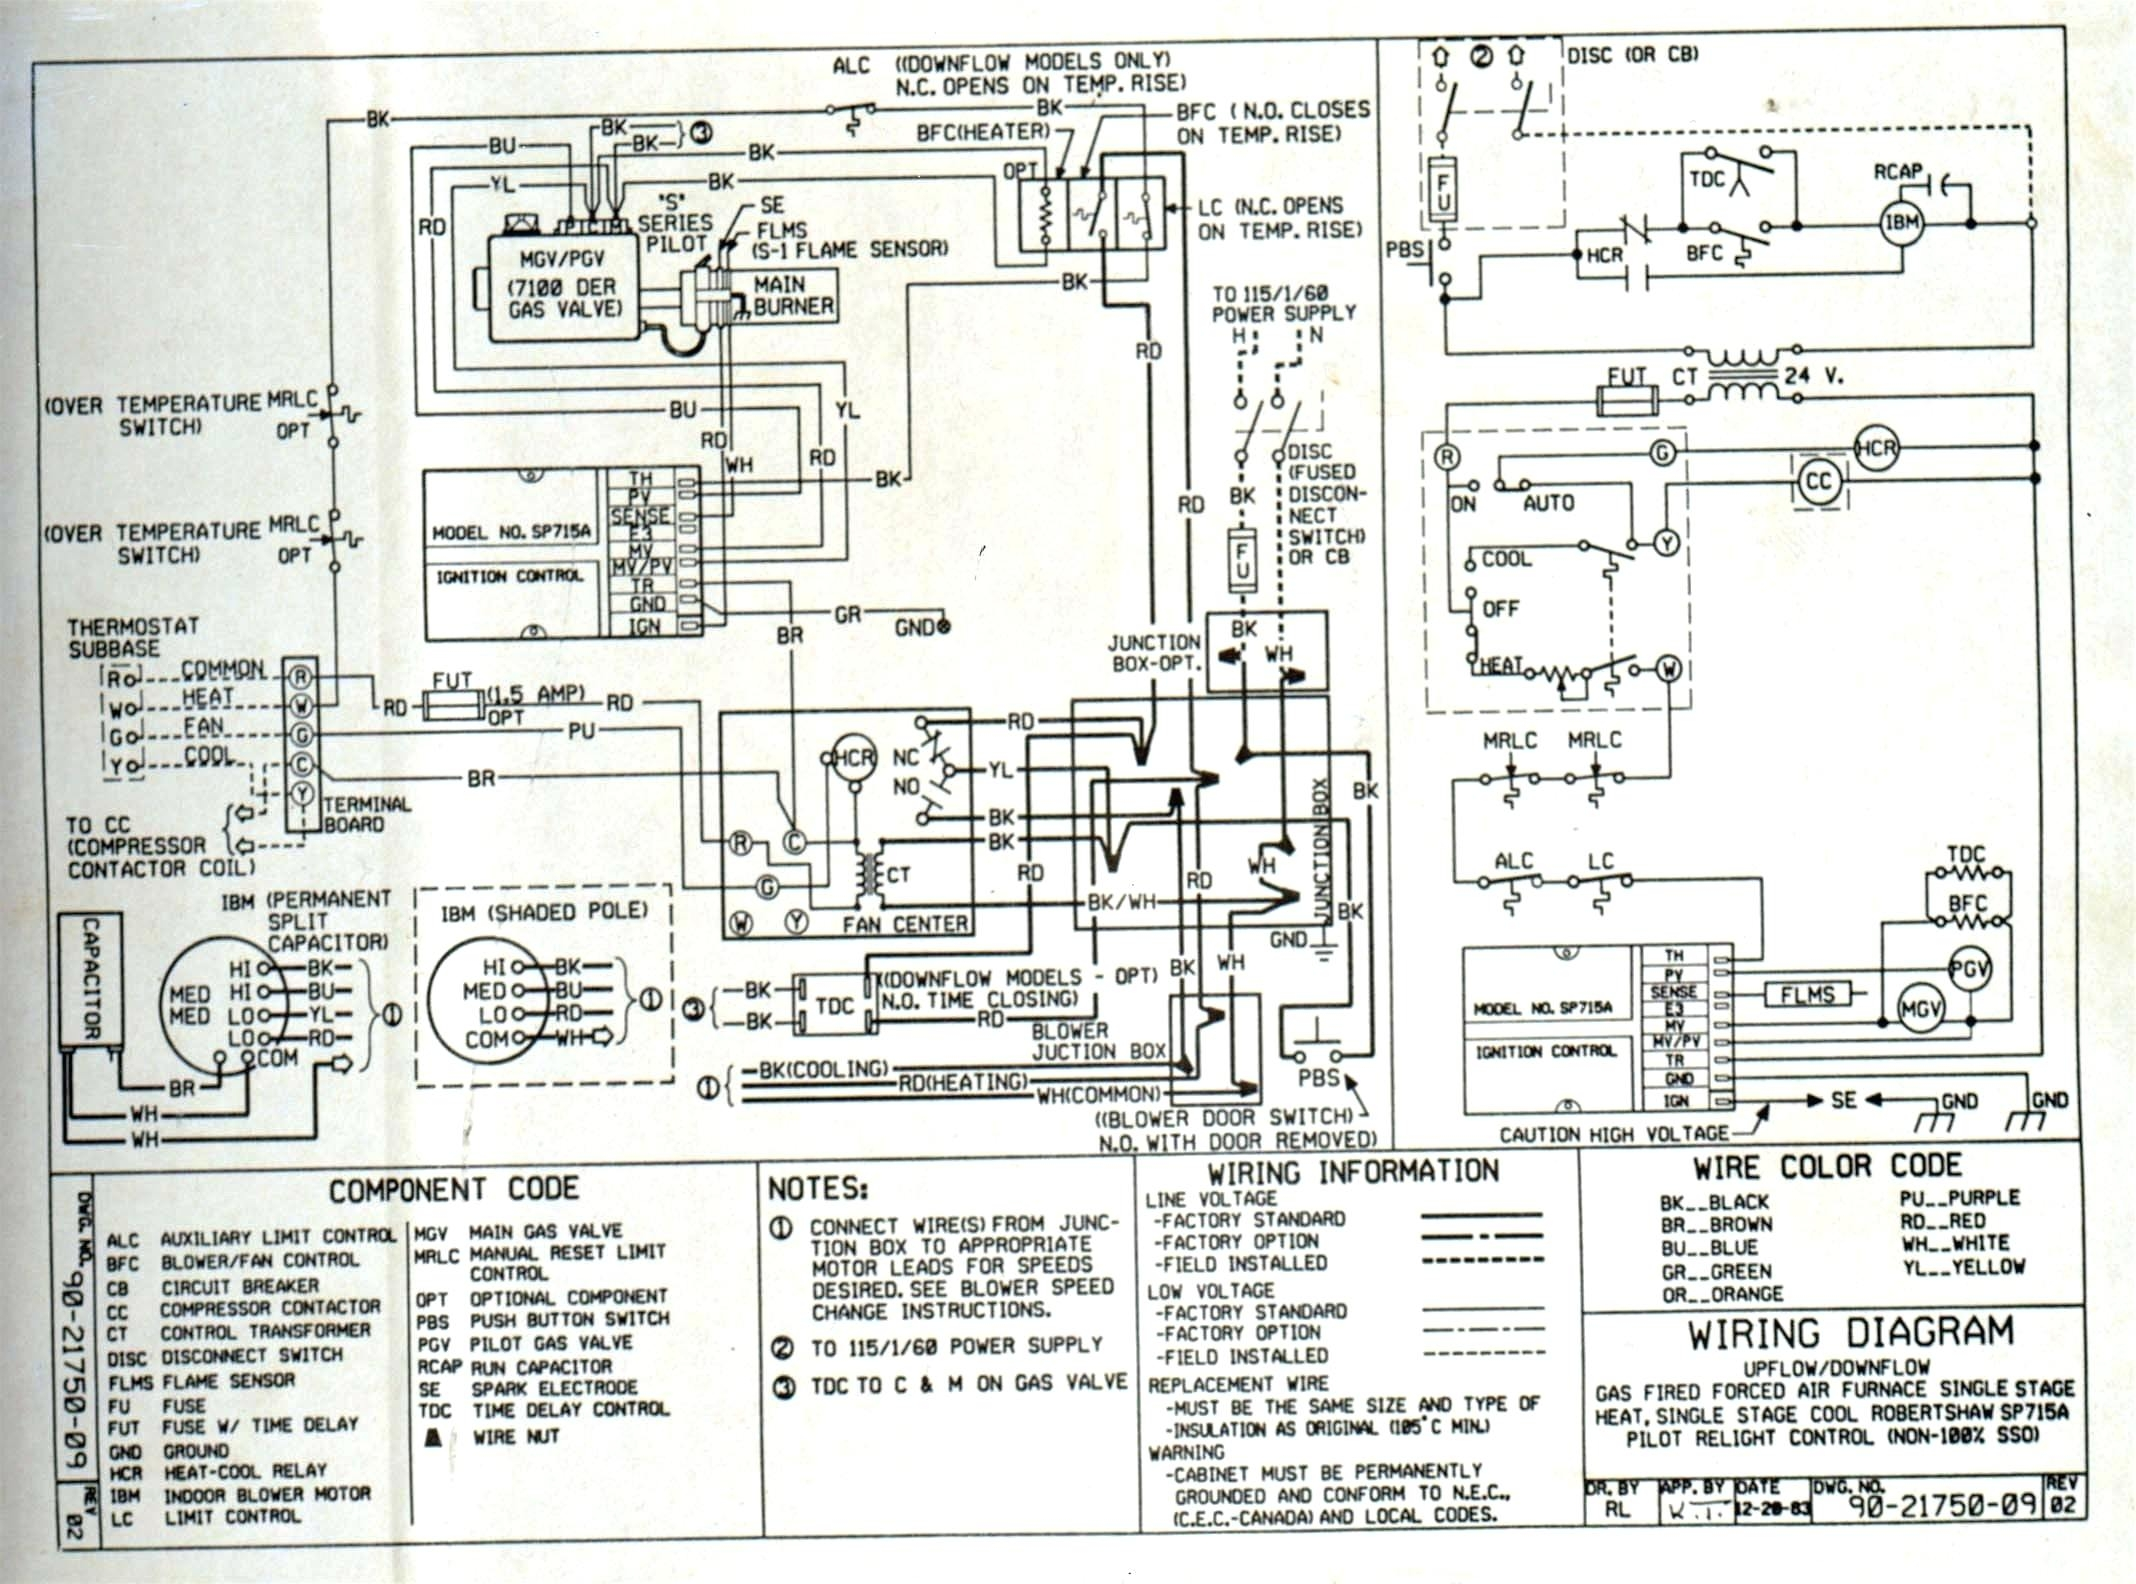 asco series 300 wiring diagram free wiring diagram